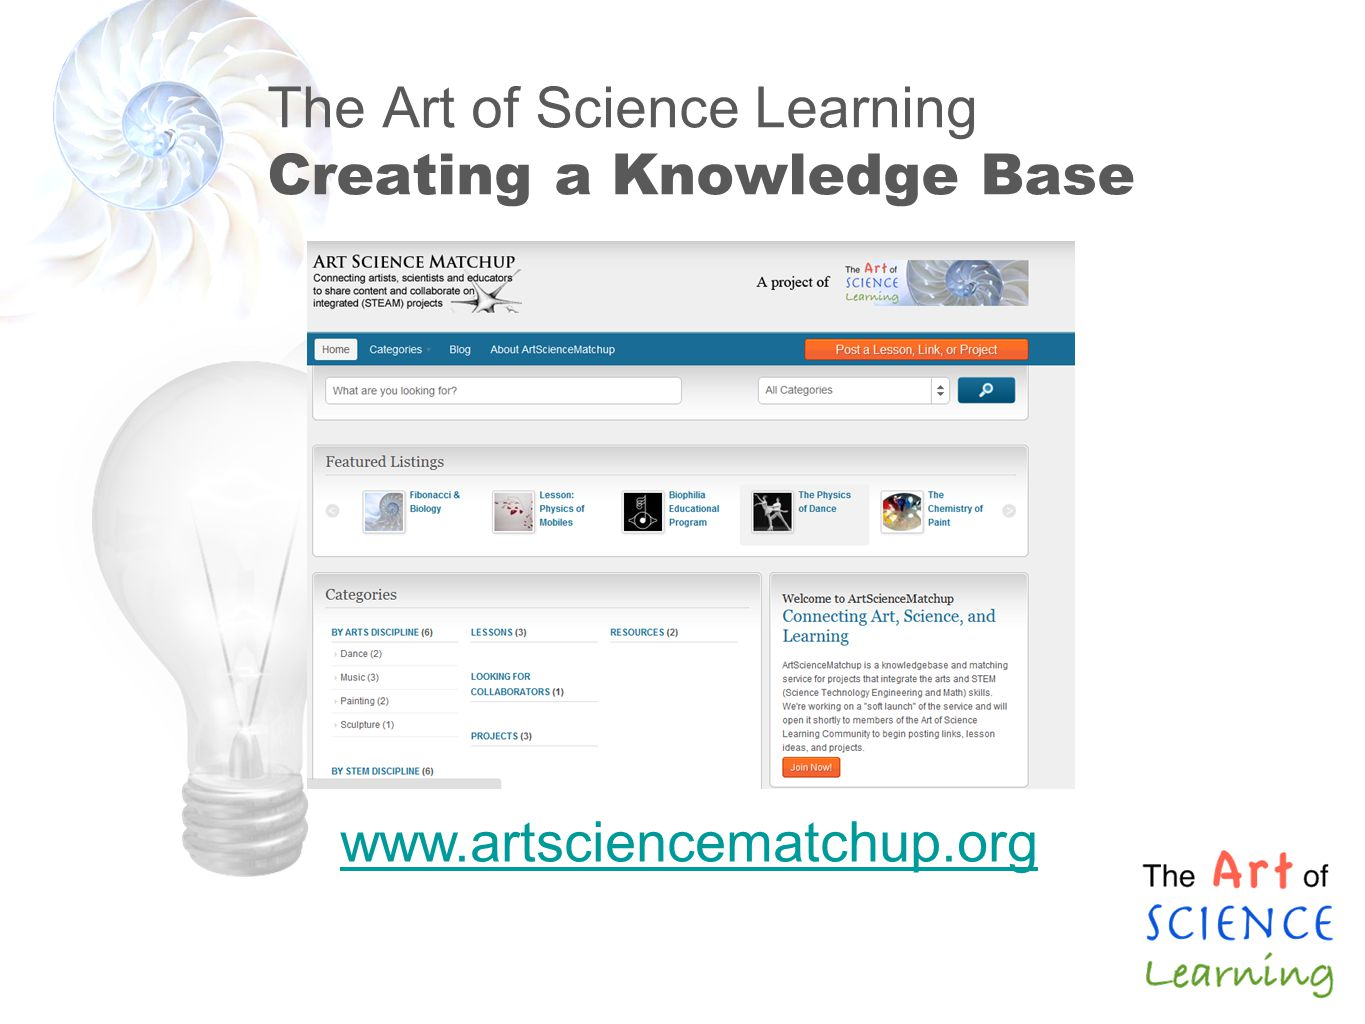 The Art of Science Learning Creating a Knowledge Base